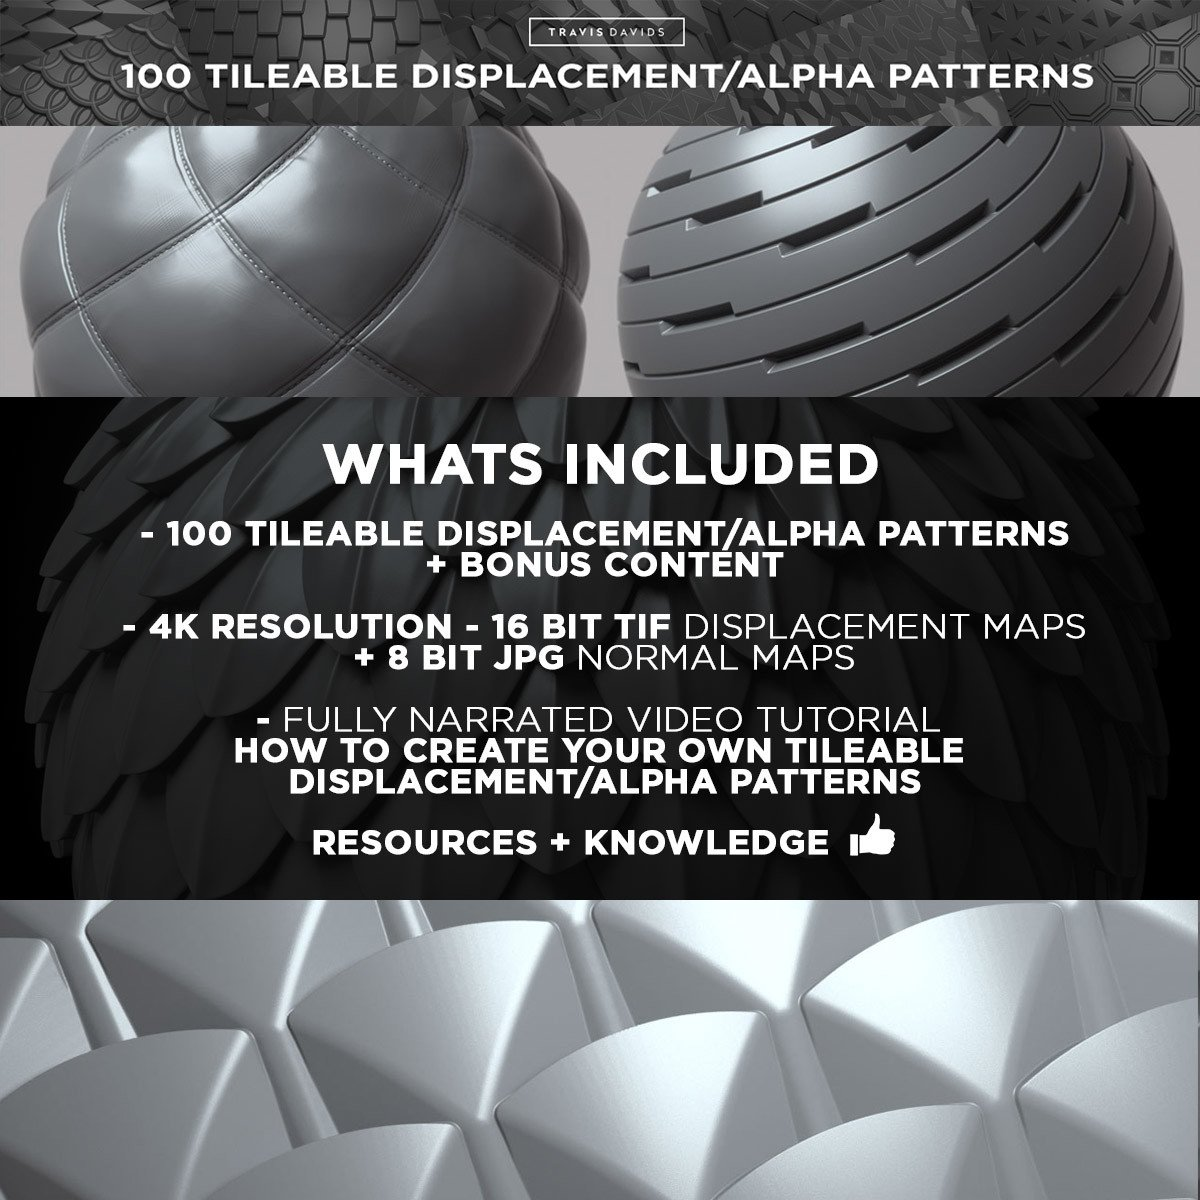 100%20tileable%20displacement%20patterns%20preview%2010